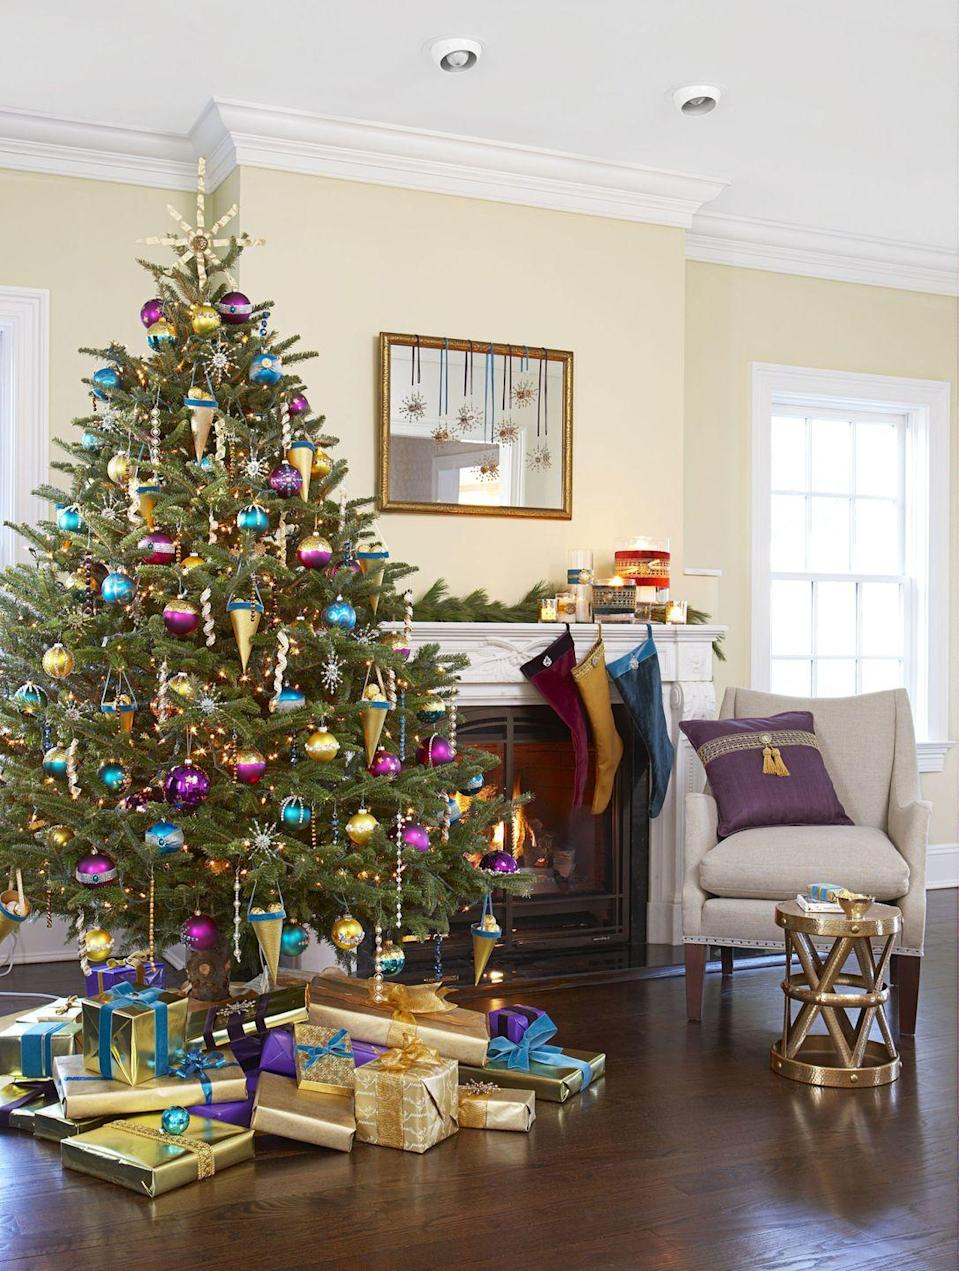 "<p>For a regal theme, mix royal purple with hints of gold and sapphire. For even more sparkle, stick self-adhesive jewels on colored balls. <br></p><p>See more at <a href=""http://www.goodhousekeeping.com/holidays/christmas-ideas/g1666/christmas-party-themes-decorations/"" rel=""nofollow noopener"" target=""_blank"" data-ylk=""slk:Good Housekeeping"" class=""link rapid-noclick-resp"">Good Housekeeping</a>. </p><p><a class=""link rapid-noclick-resp"" href=""https://www.amazon.com/Pieces-Stickers-Rhinestone-Adhesive-Crystal/dp/B07ZMPNXHC/?tag=syn-yahoo-20&ascsubtag=%5Bartid%7C10057.g.505%5Bsrc%7Cyahoo-us"" rel=""nofollow noopener"" target=""_blank"" data-ylk=""slk:SHOP STICKERS"">SHOP STICKERS</a> <strong><em>Jewel Stickers, $7</em></strong></p>"